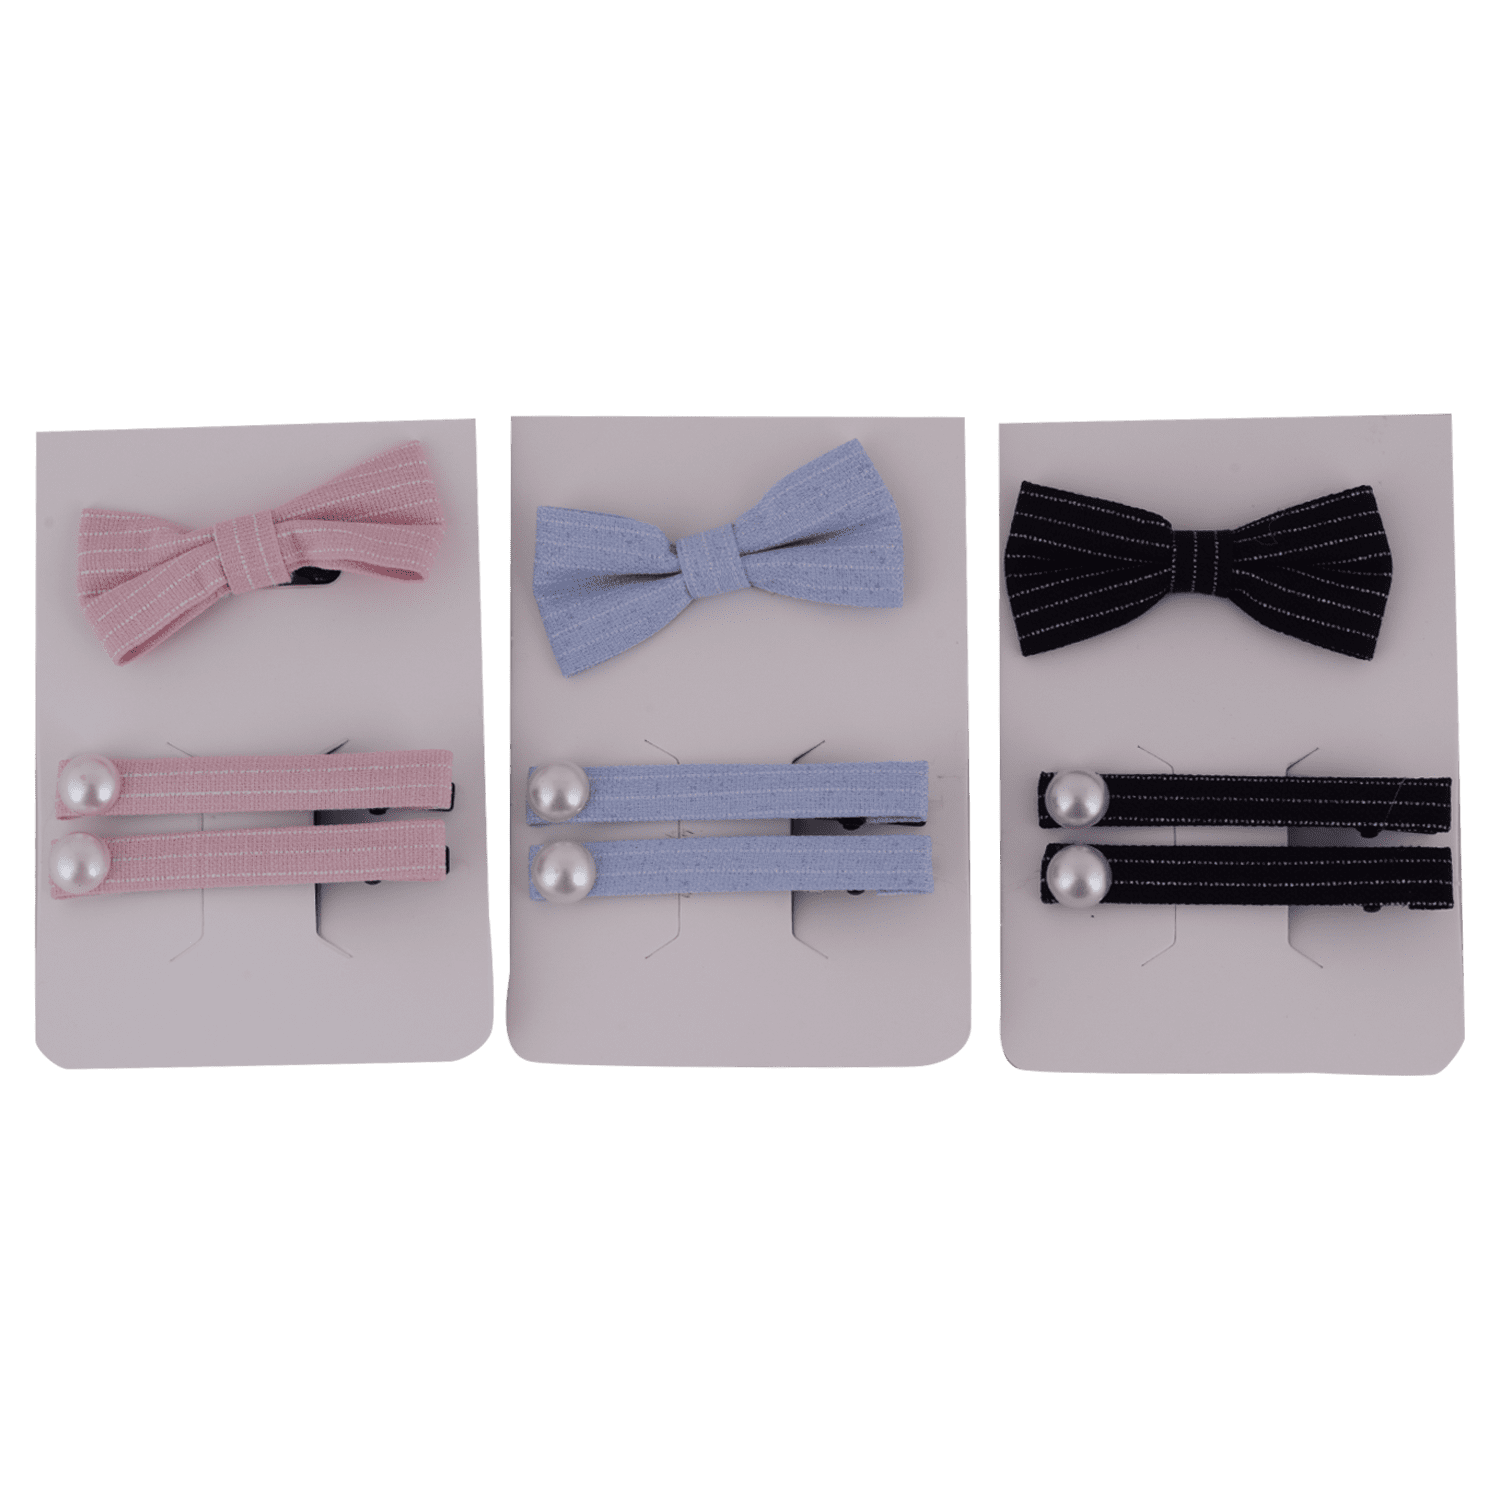 STRIPED HAIR CLIP AND BAND SET 3 PCS